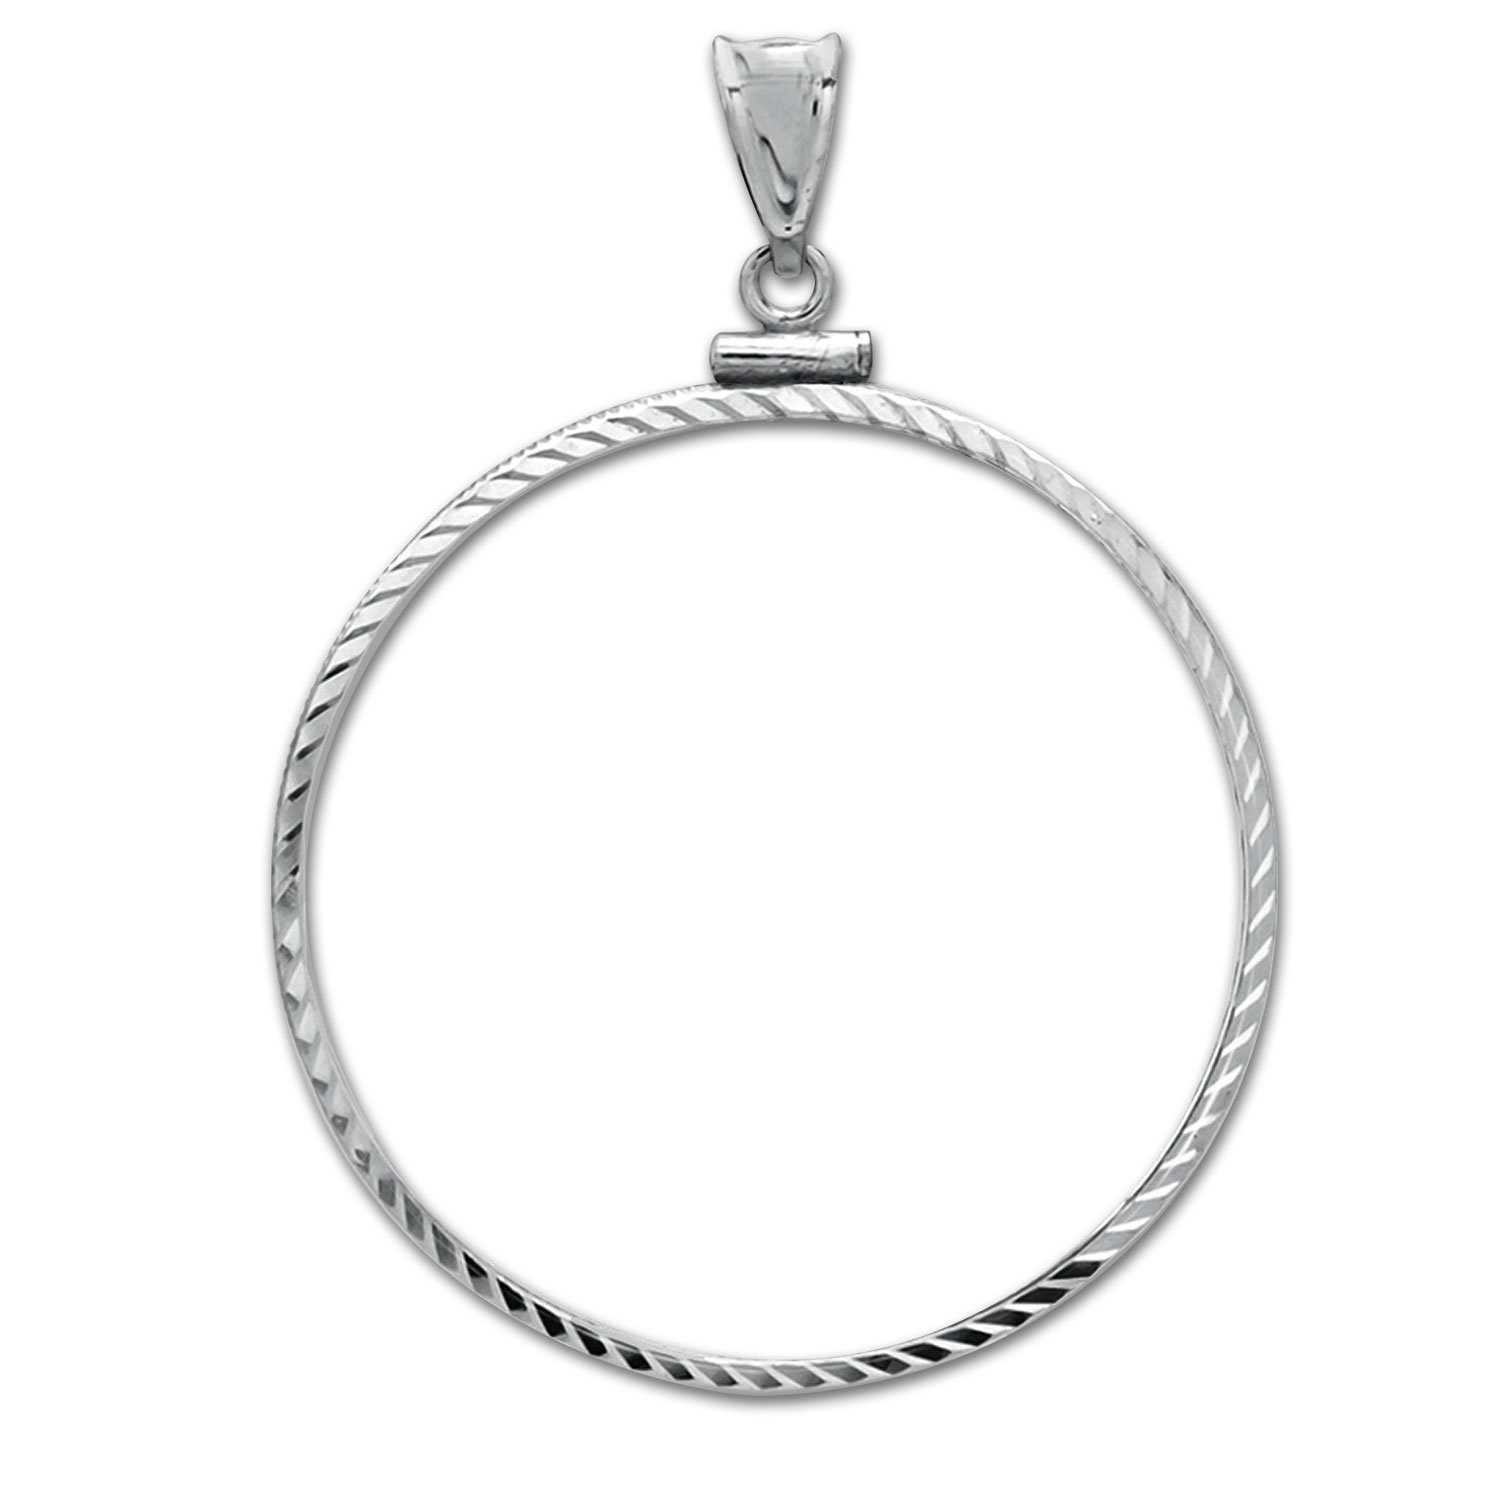 14K White Gold Screw-Top Diamond-Cut Coin Bezel - 27 mm